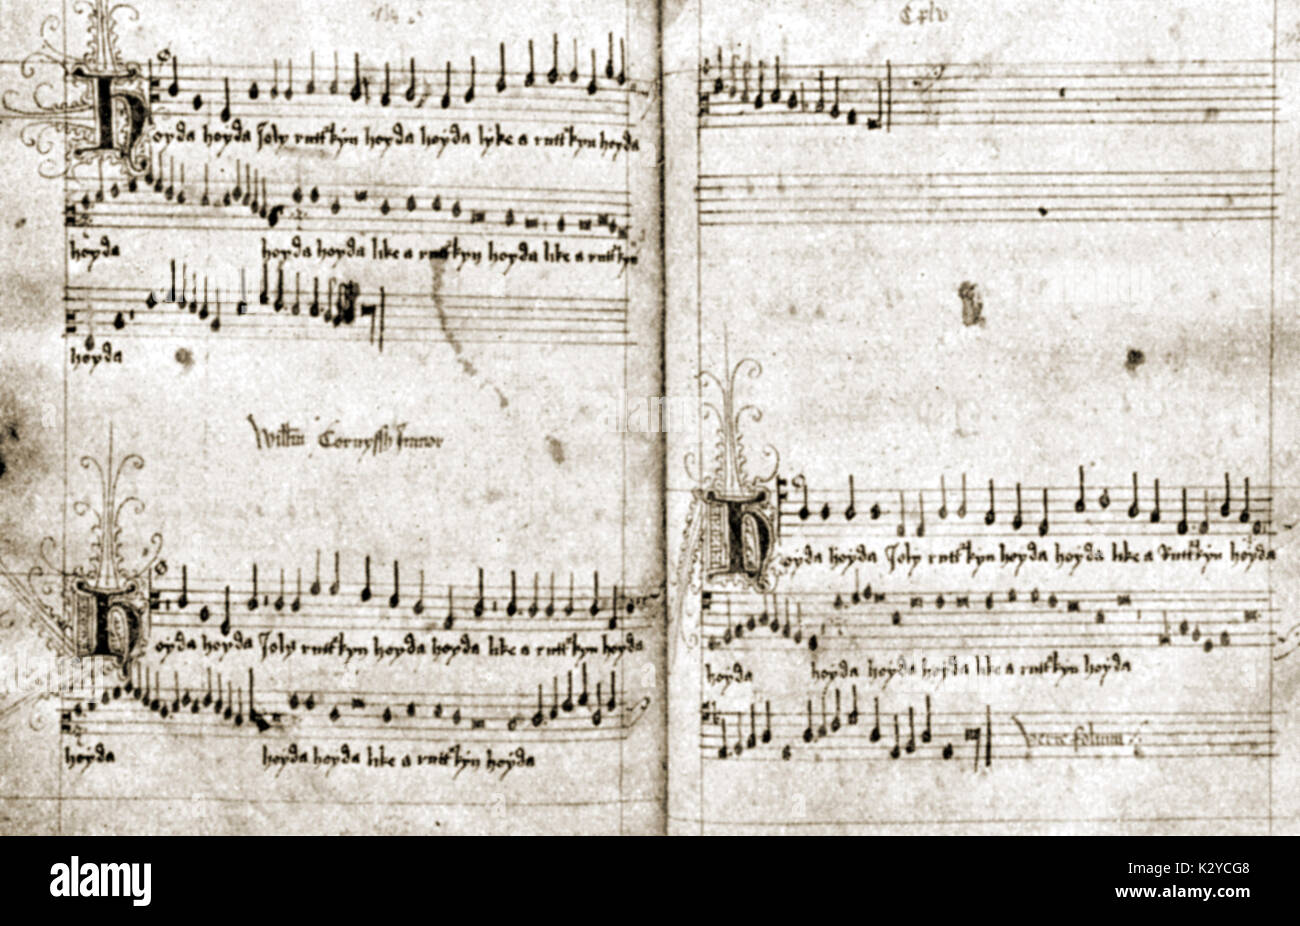 CORNYSH, William score for 3 part song - 'Hoyda Jolly Rutterkin' , c.1500, in mensural notation. English Composer, 1465-1523 - Stock Image